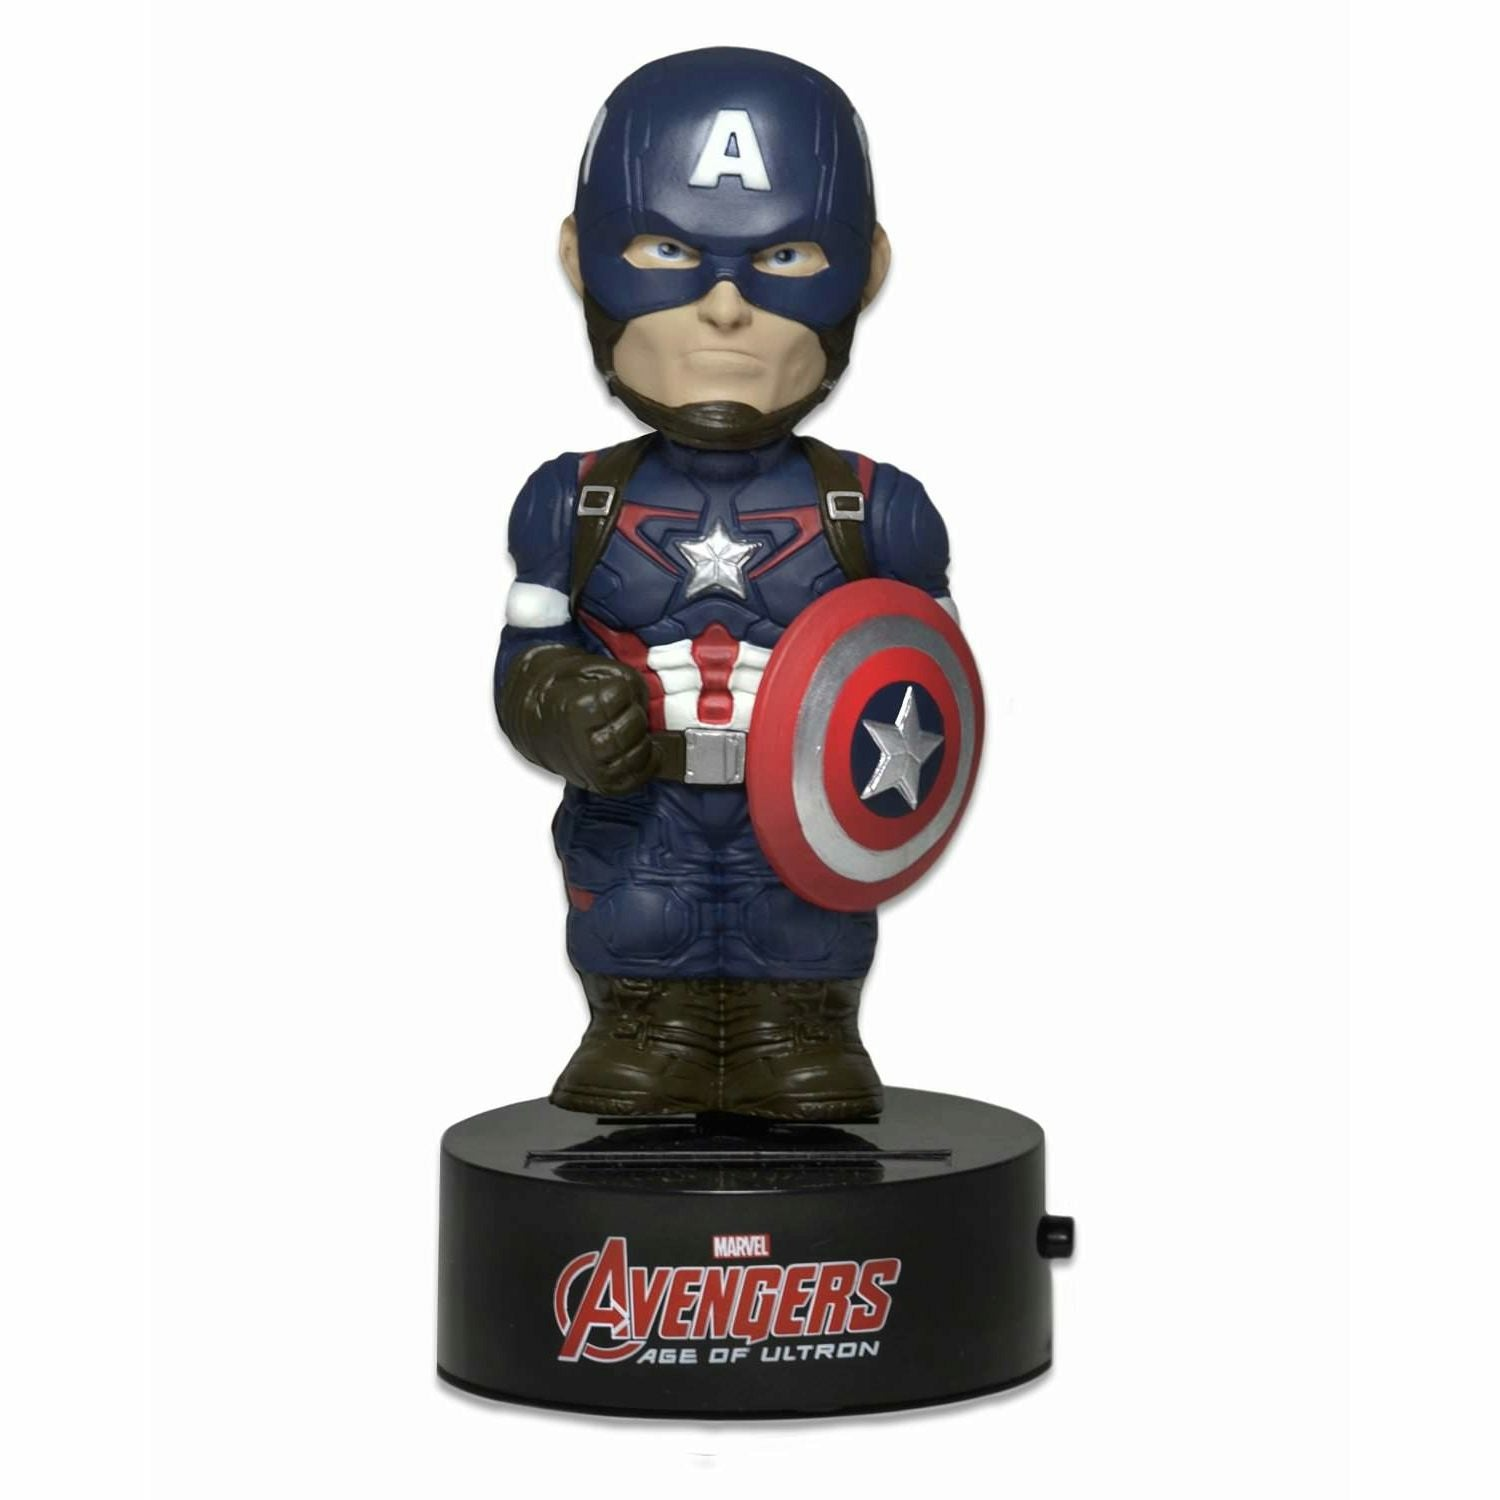 Neca Avengers Age of Ultron Captain America Solar Powered Body Knocker